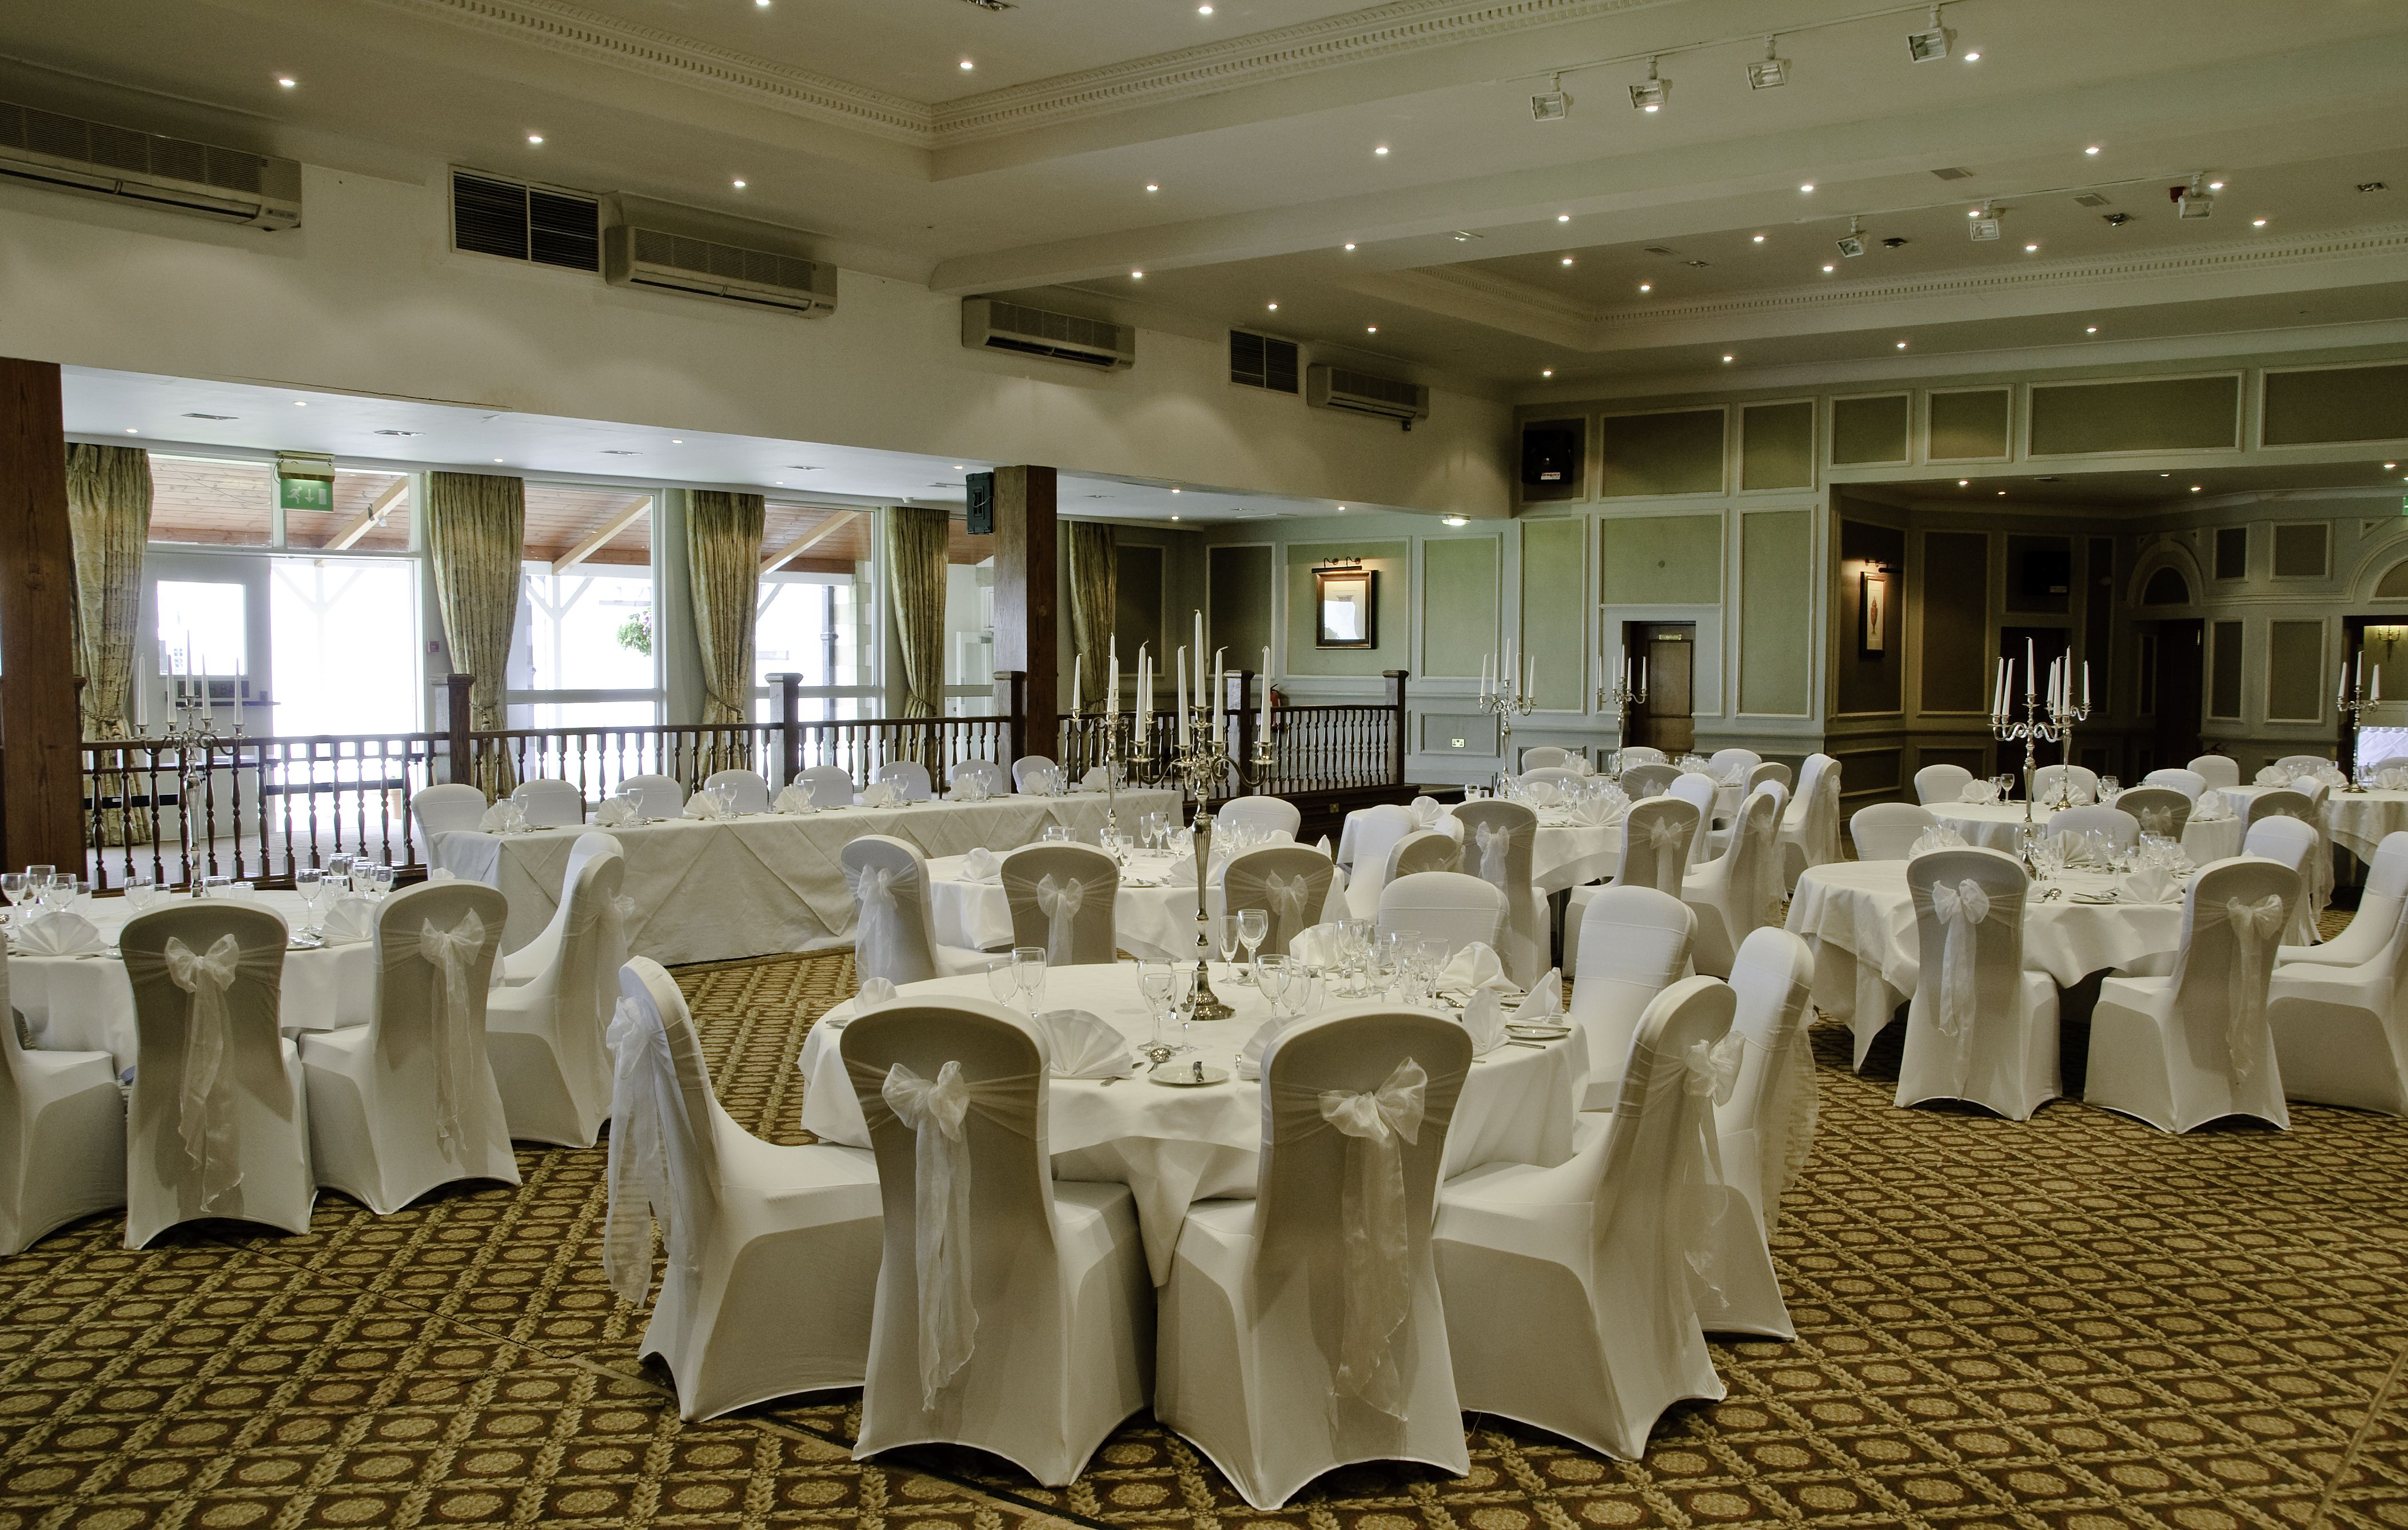 Wedding Chair Covers Burton On Trent Baby Sitting In Car Dunkenhalgh Hotel Pendle Suite White